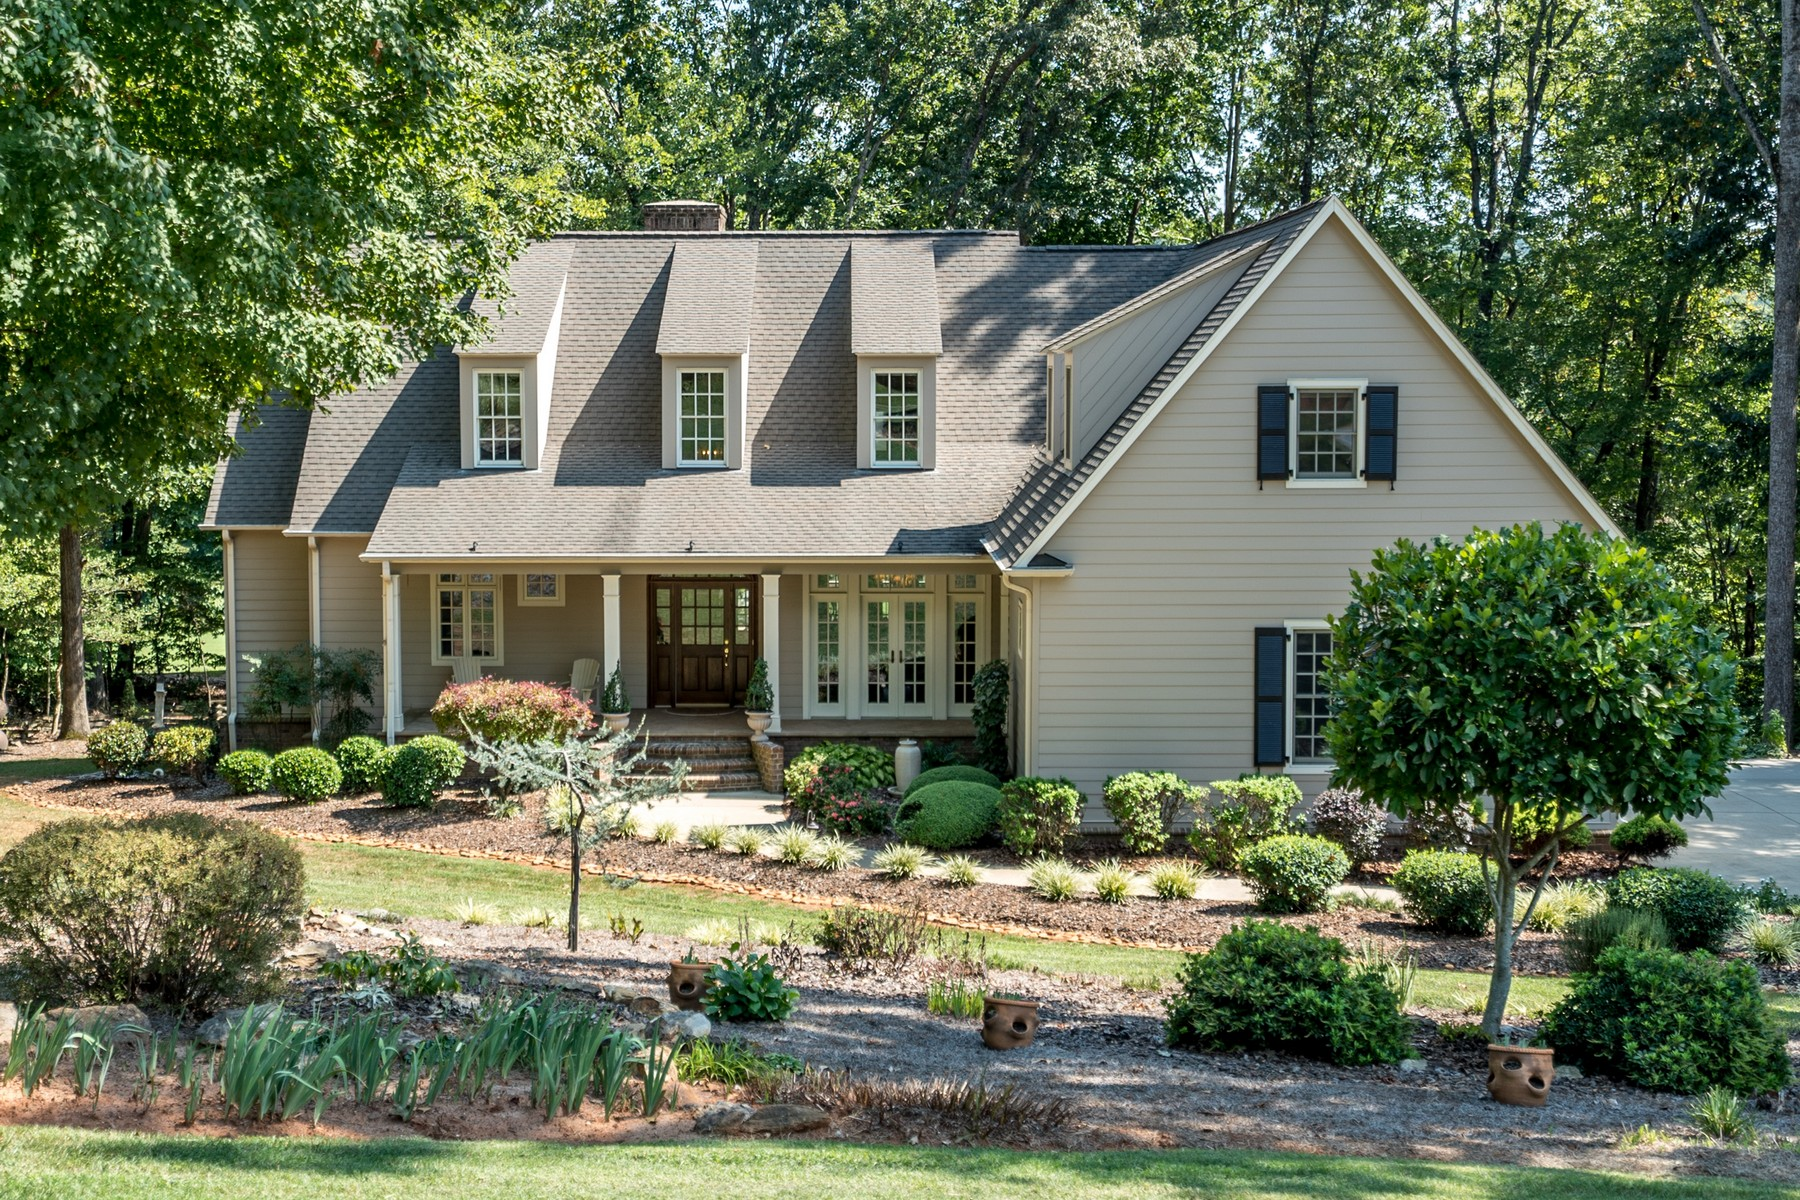 Single Family Home for Sale at 2235 Stone Bridge 2235 Stone Bridge Road Asheboro, North Carolina 27205 United StatesIn/Around: Cary, Chapel Hill, Greensboro